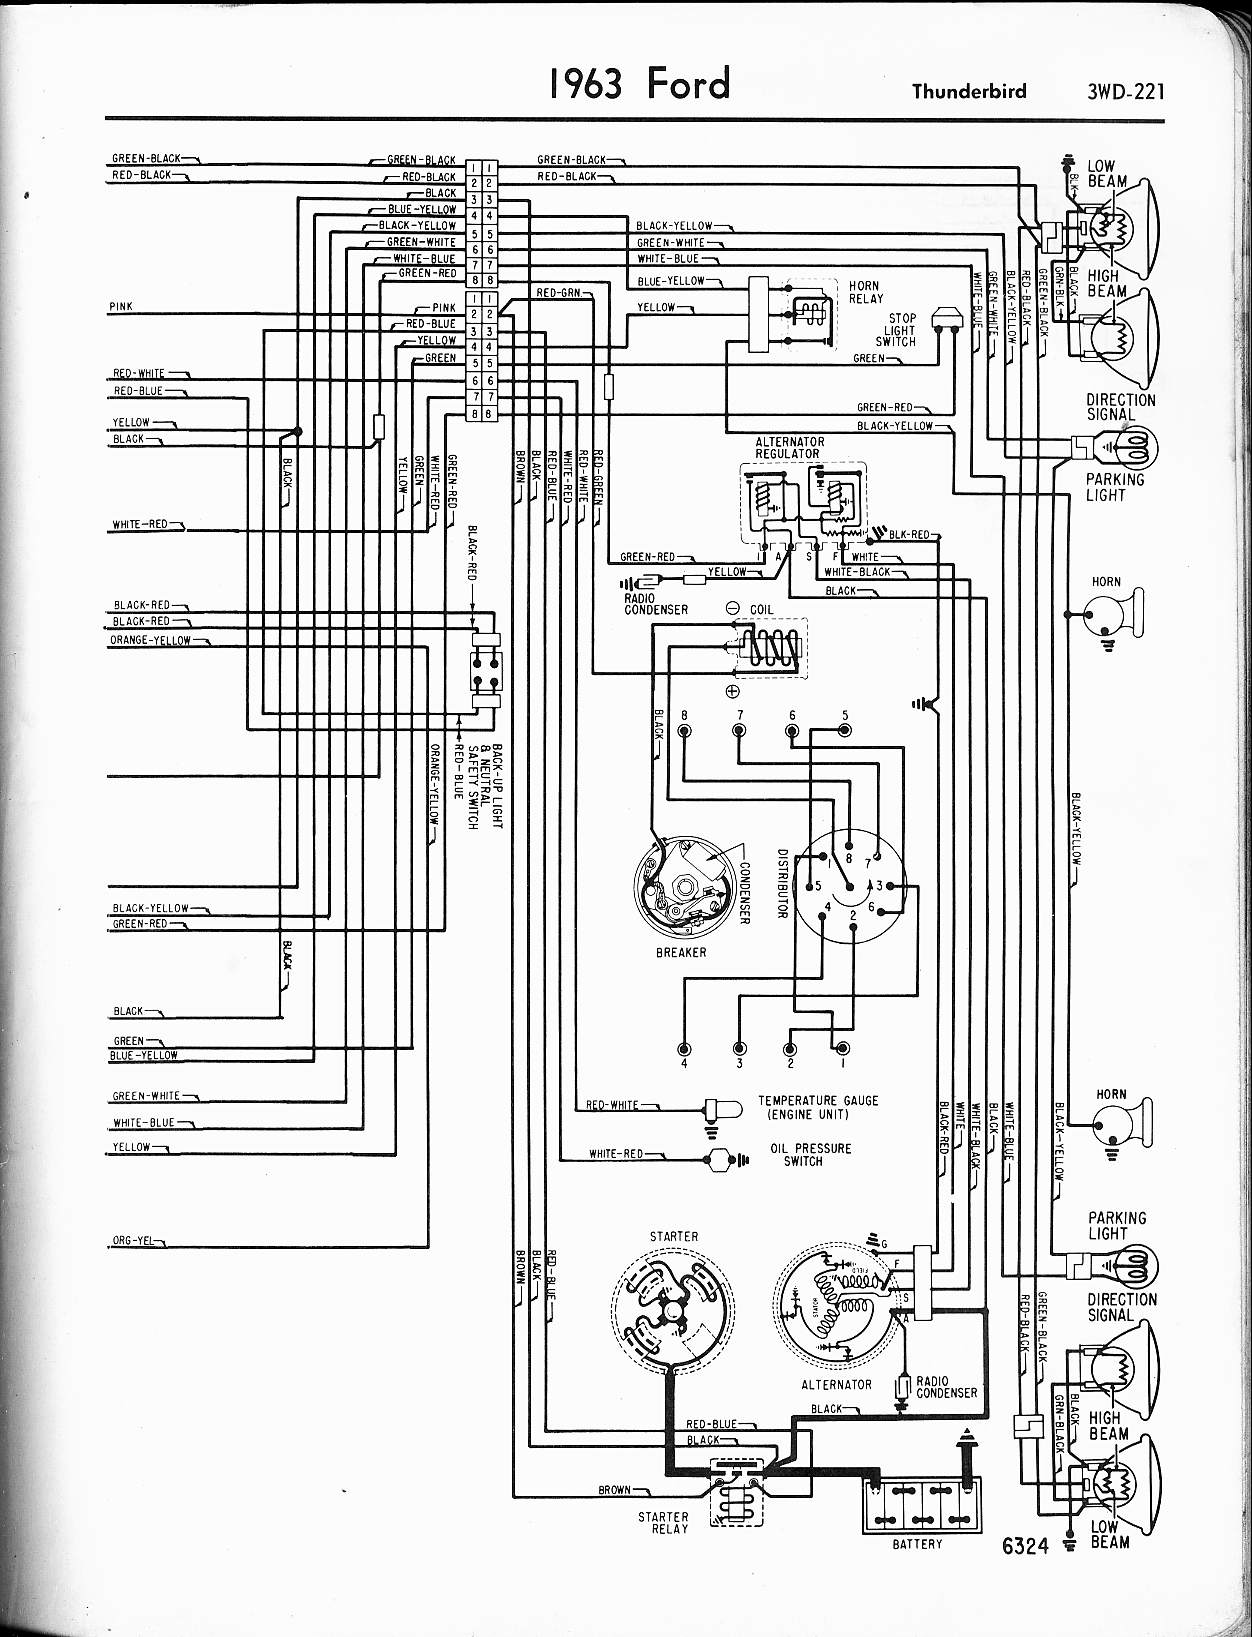 57 65 Ford Wiring Diagrams 1955 Chevy Turn Signal Diagram Free Download 1963 Thunderbird Right